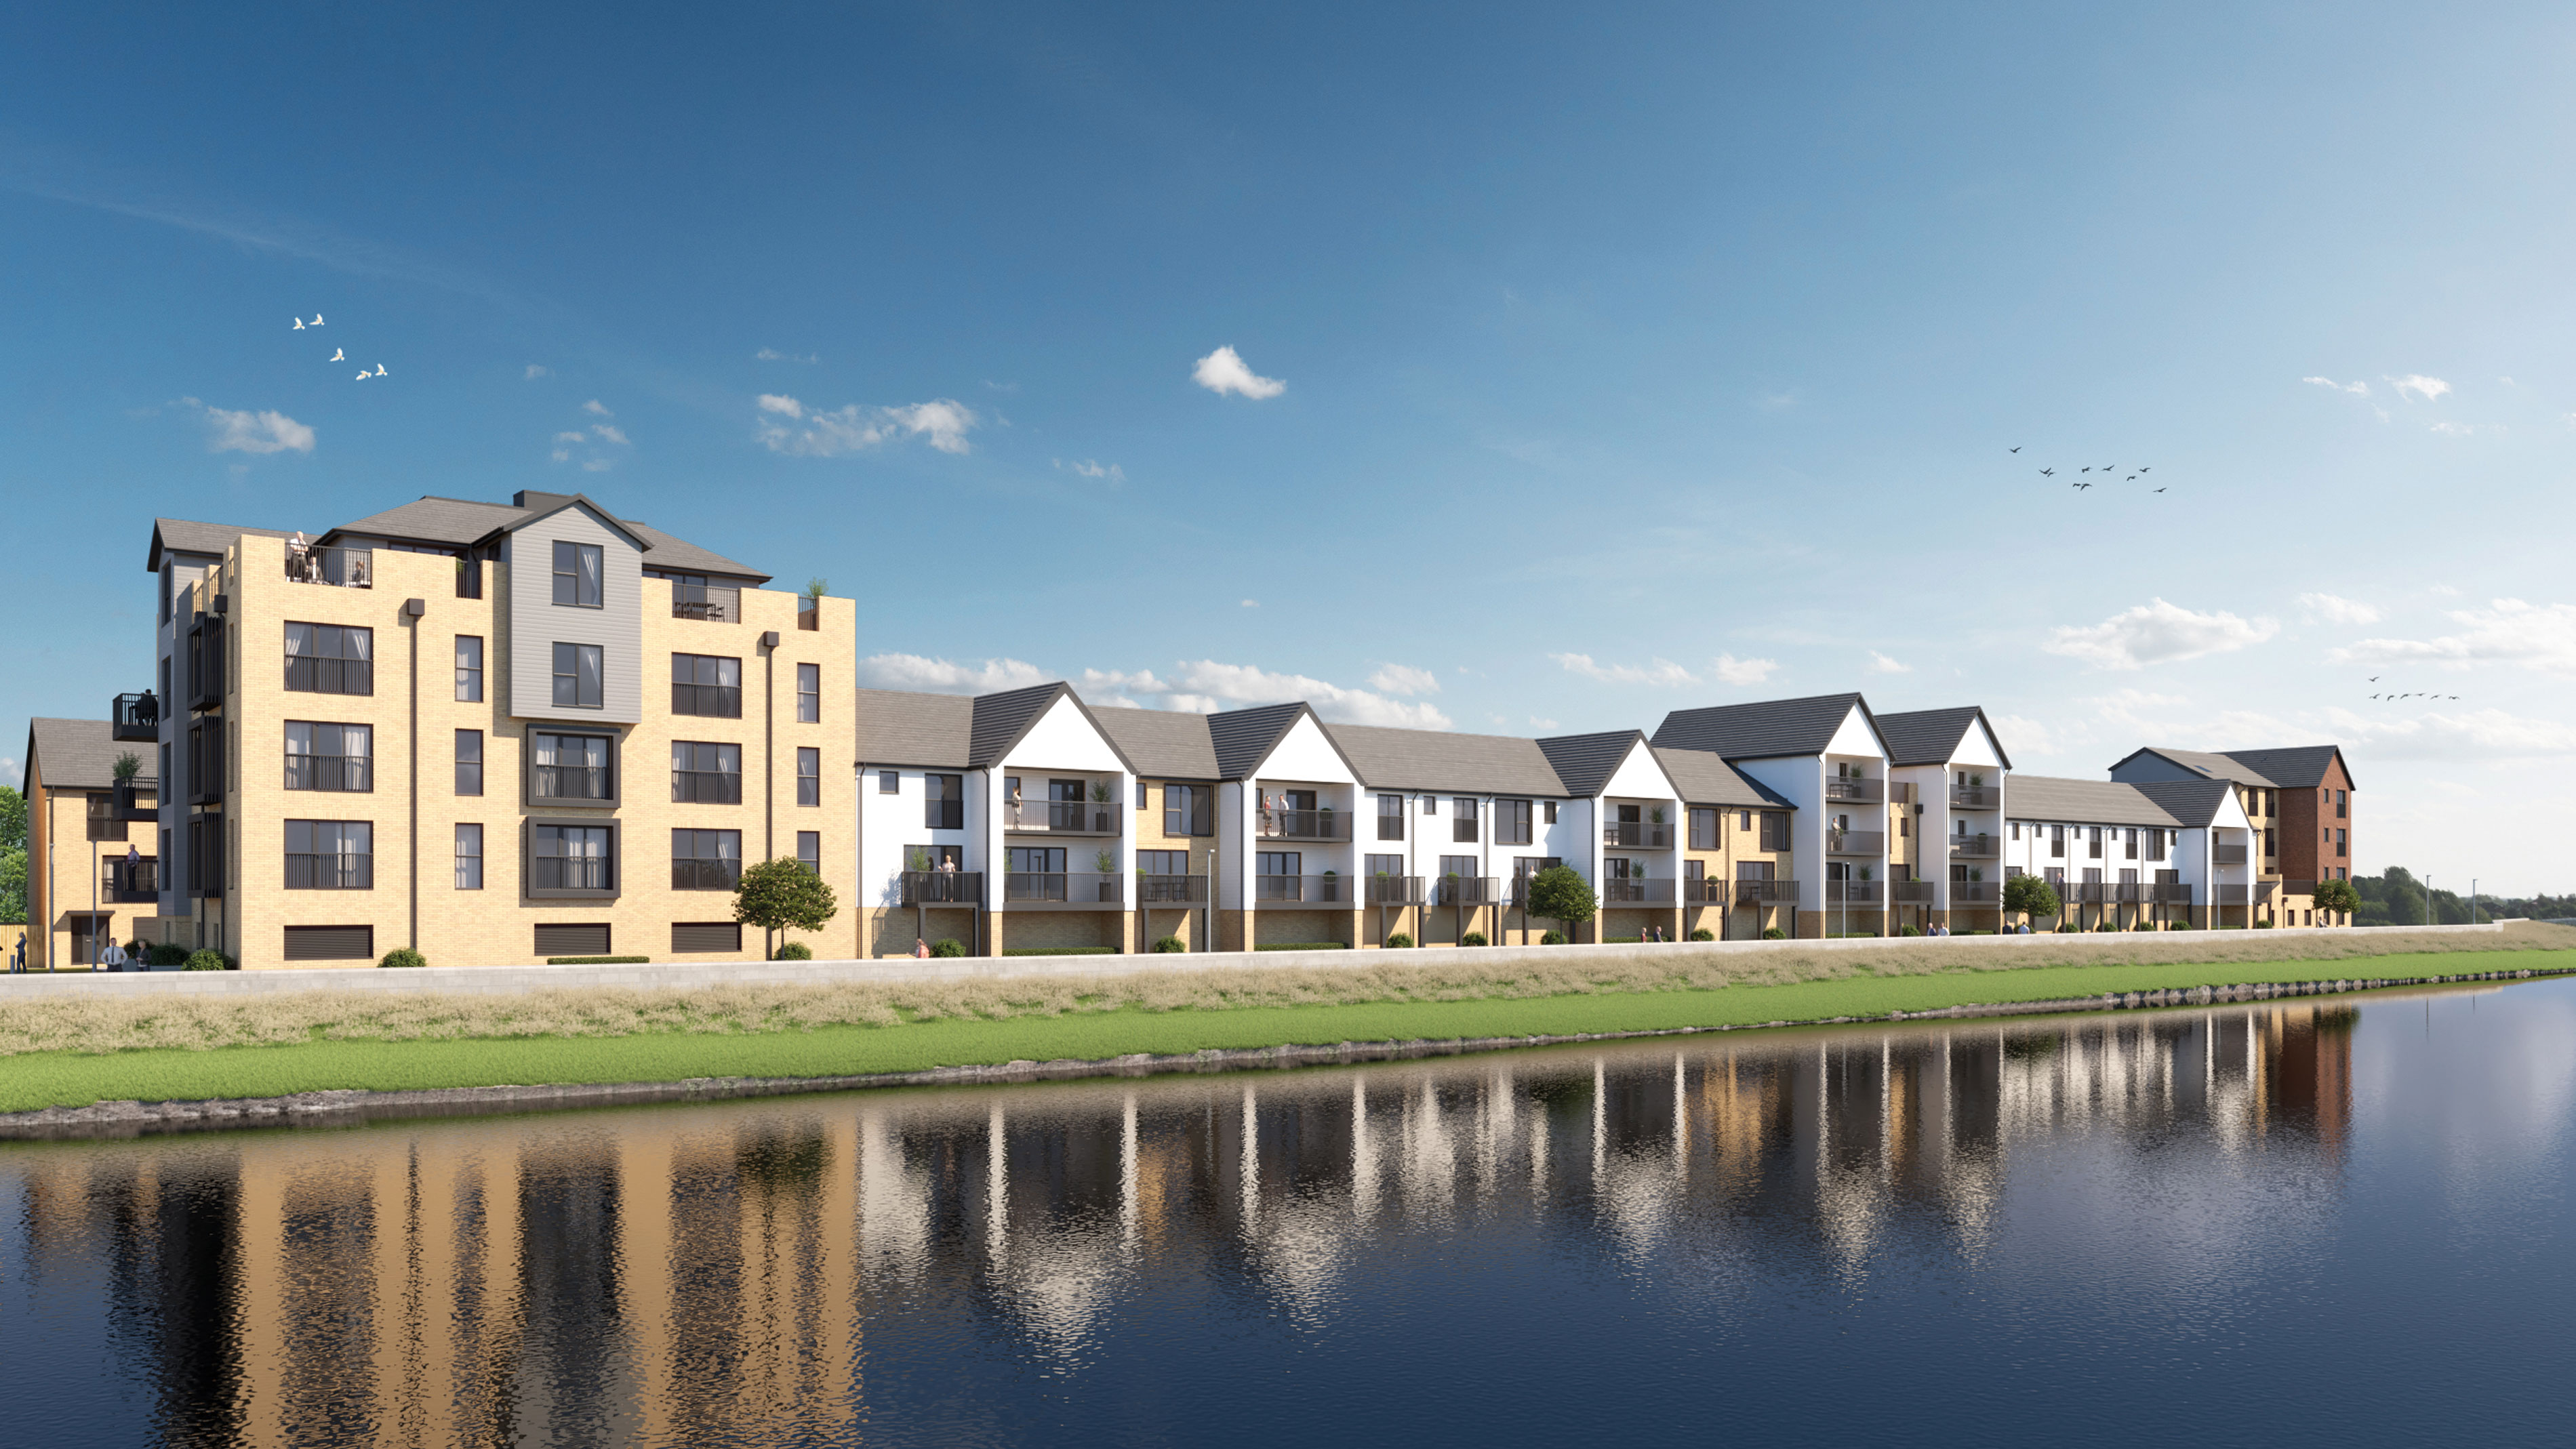 Taw Wharf 2 Bed Apartments